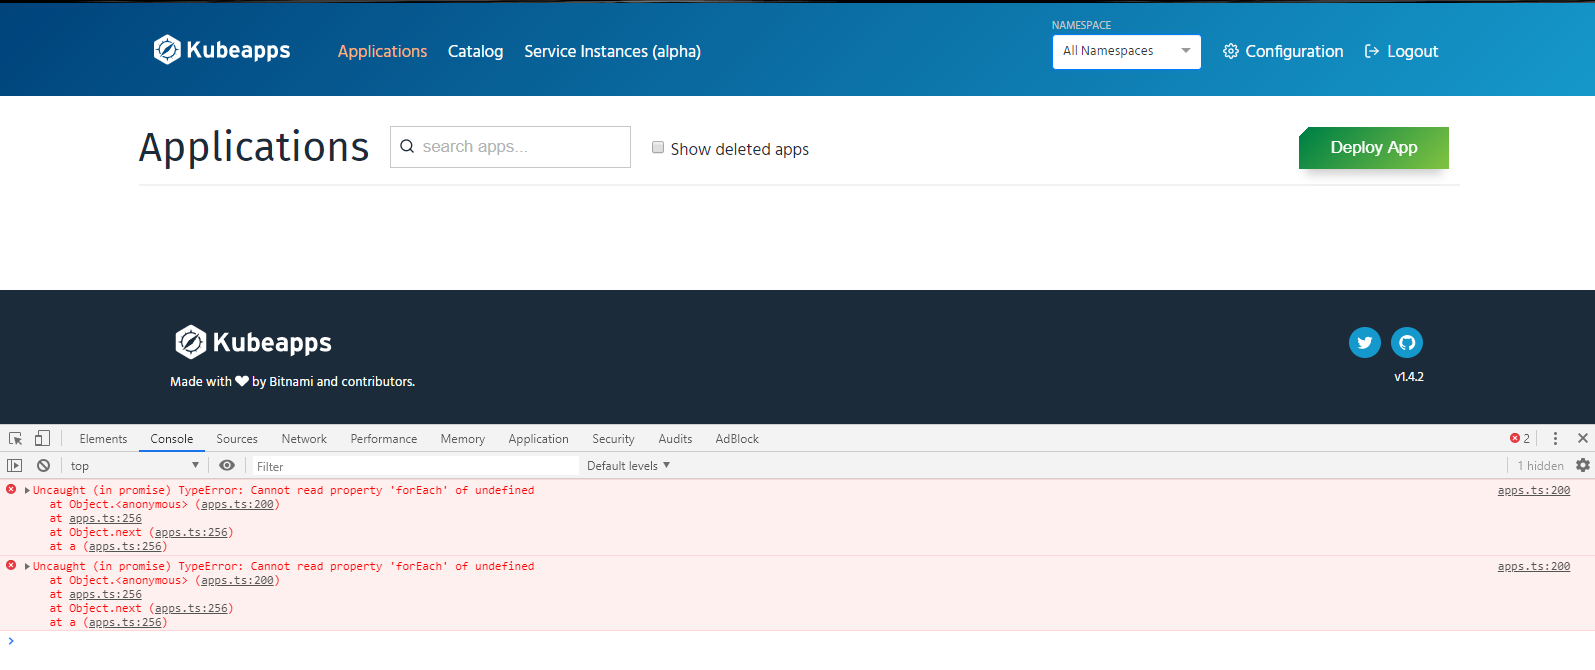 dashboard not working with error · Issue #1096 · kubeapps